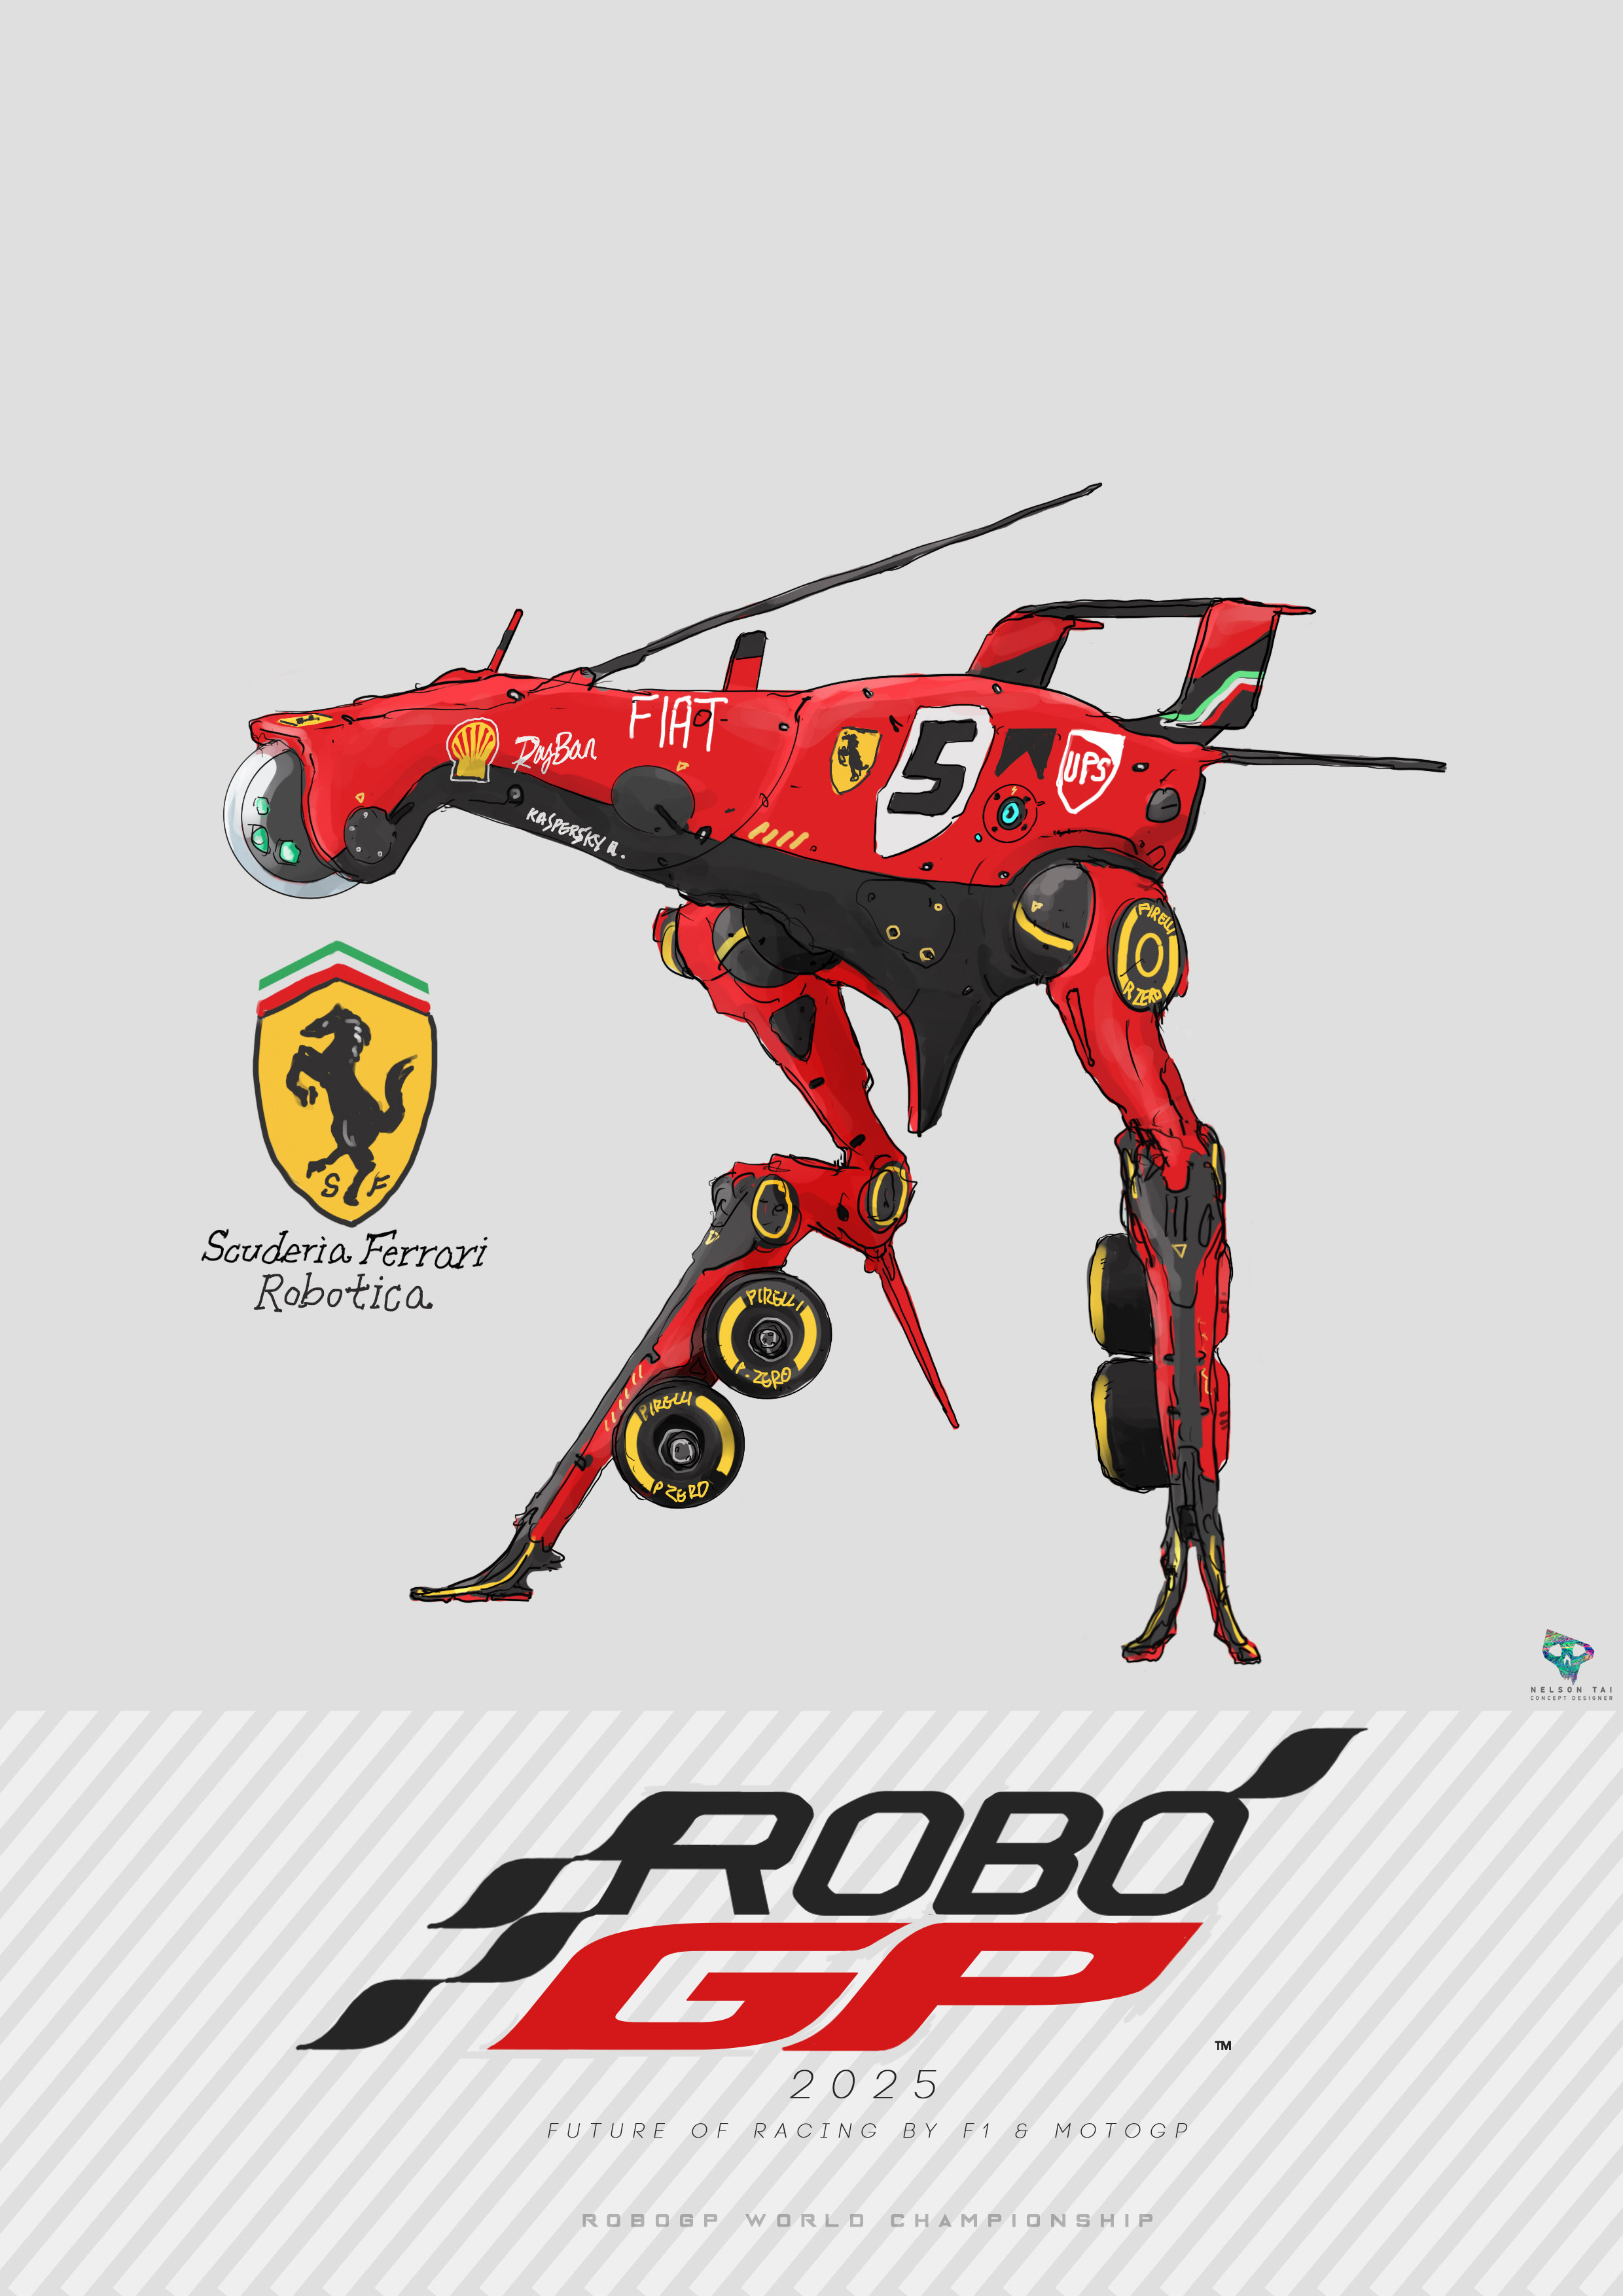 Scuderia Ferrari Robotica | Runs on the data of 4-time World Champion Sebastian Vettel!